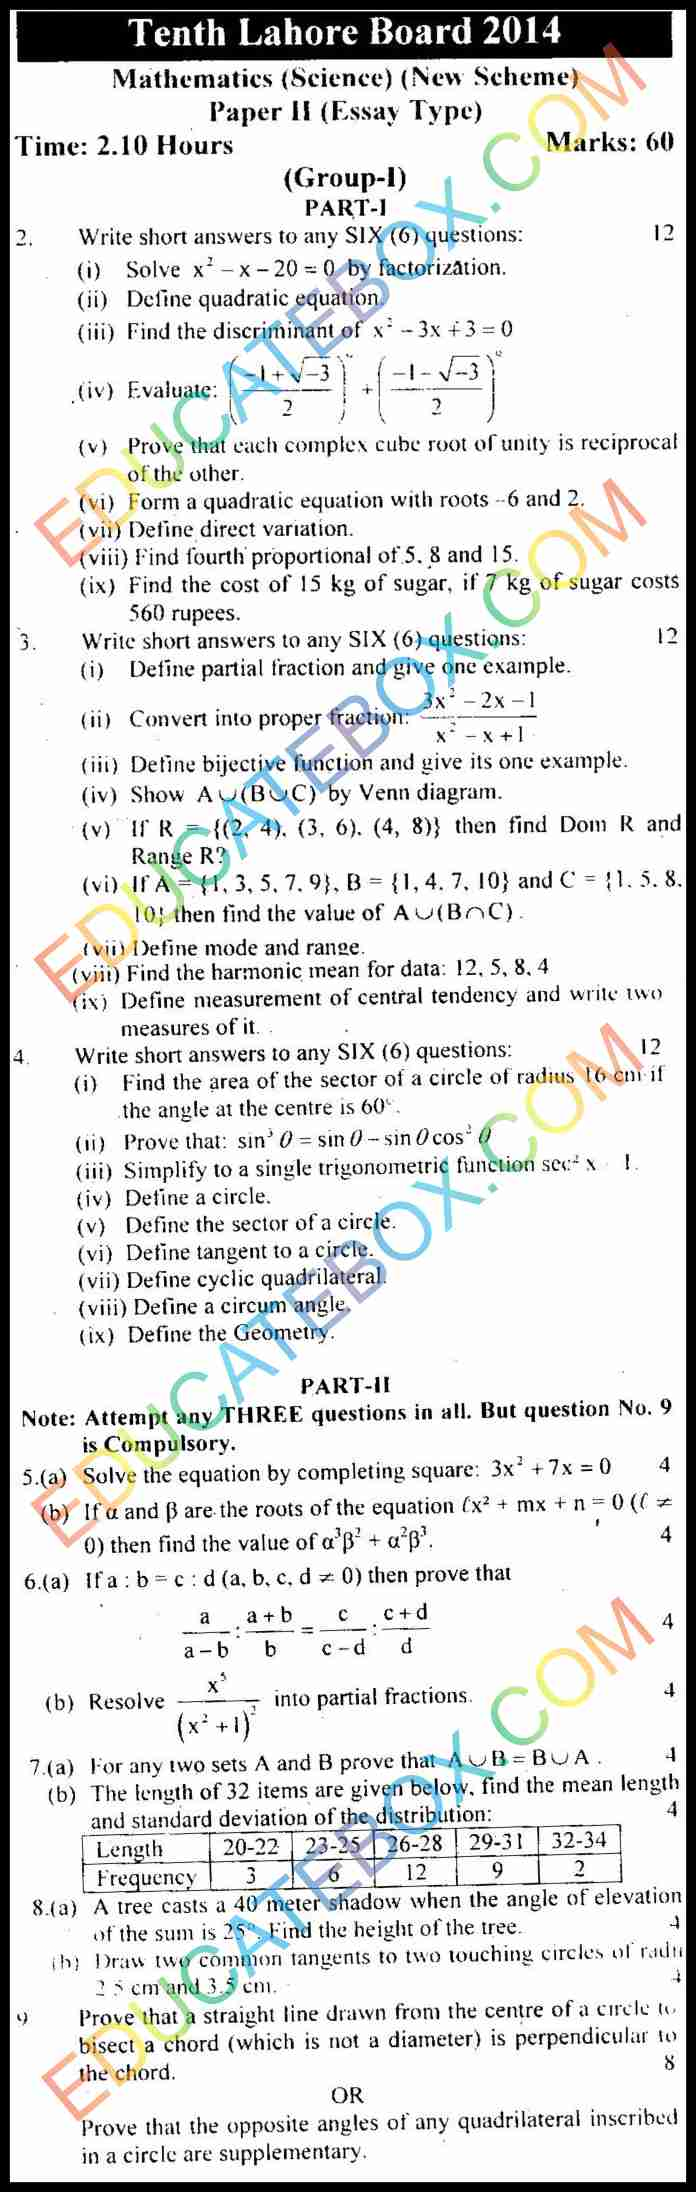 Past Paper Class 10 Maths (Science Group) Lahore Board 2014 Subjective Type Group 1 (English Medium)